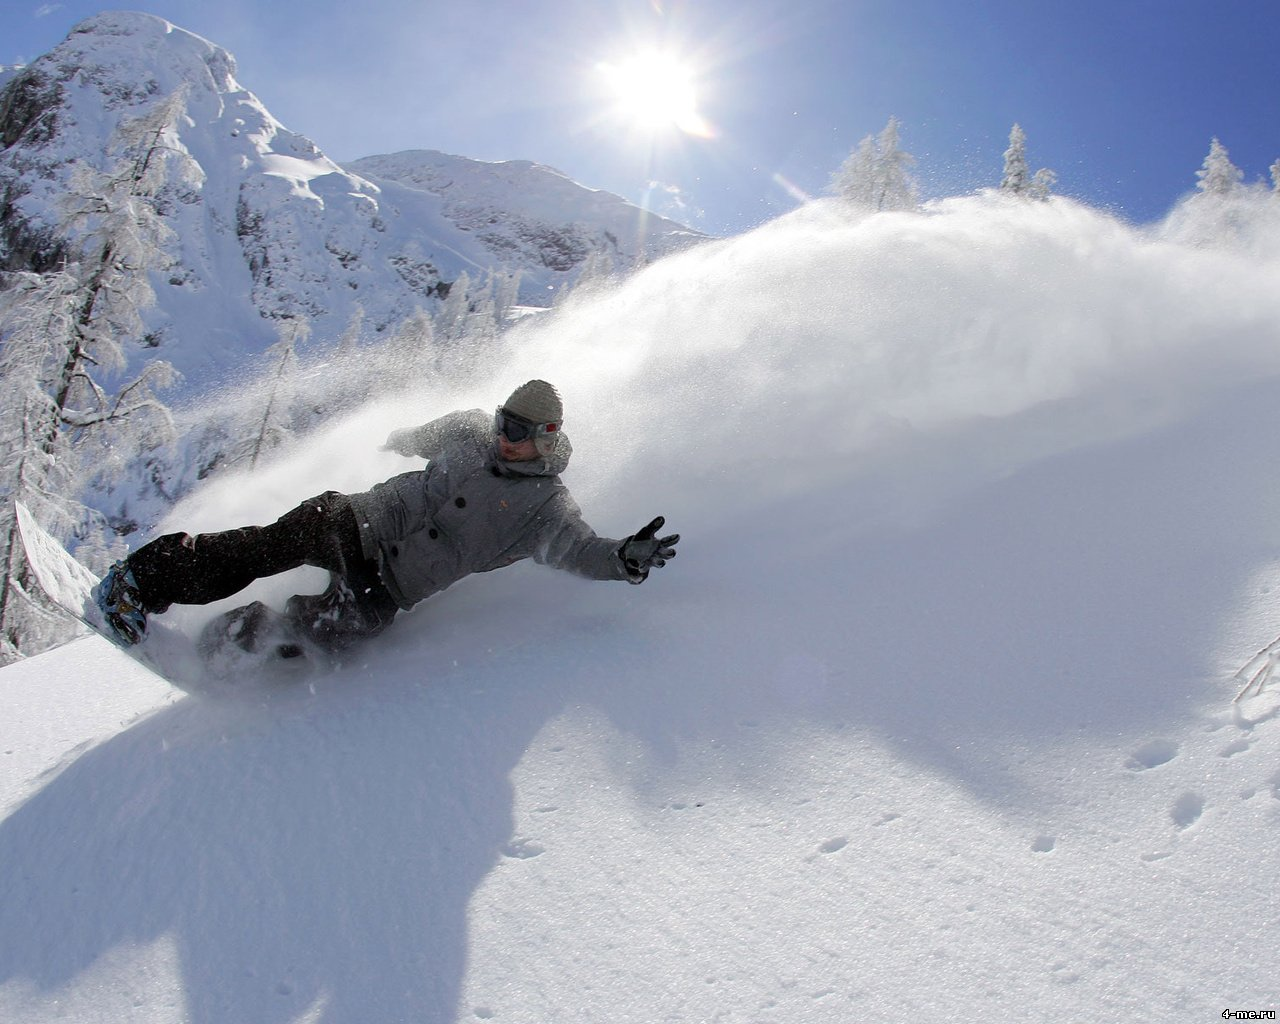 Snow Falling Background Wallpaper Snowboarding Wallpapers High Quality Download Free